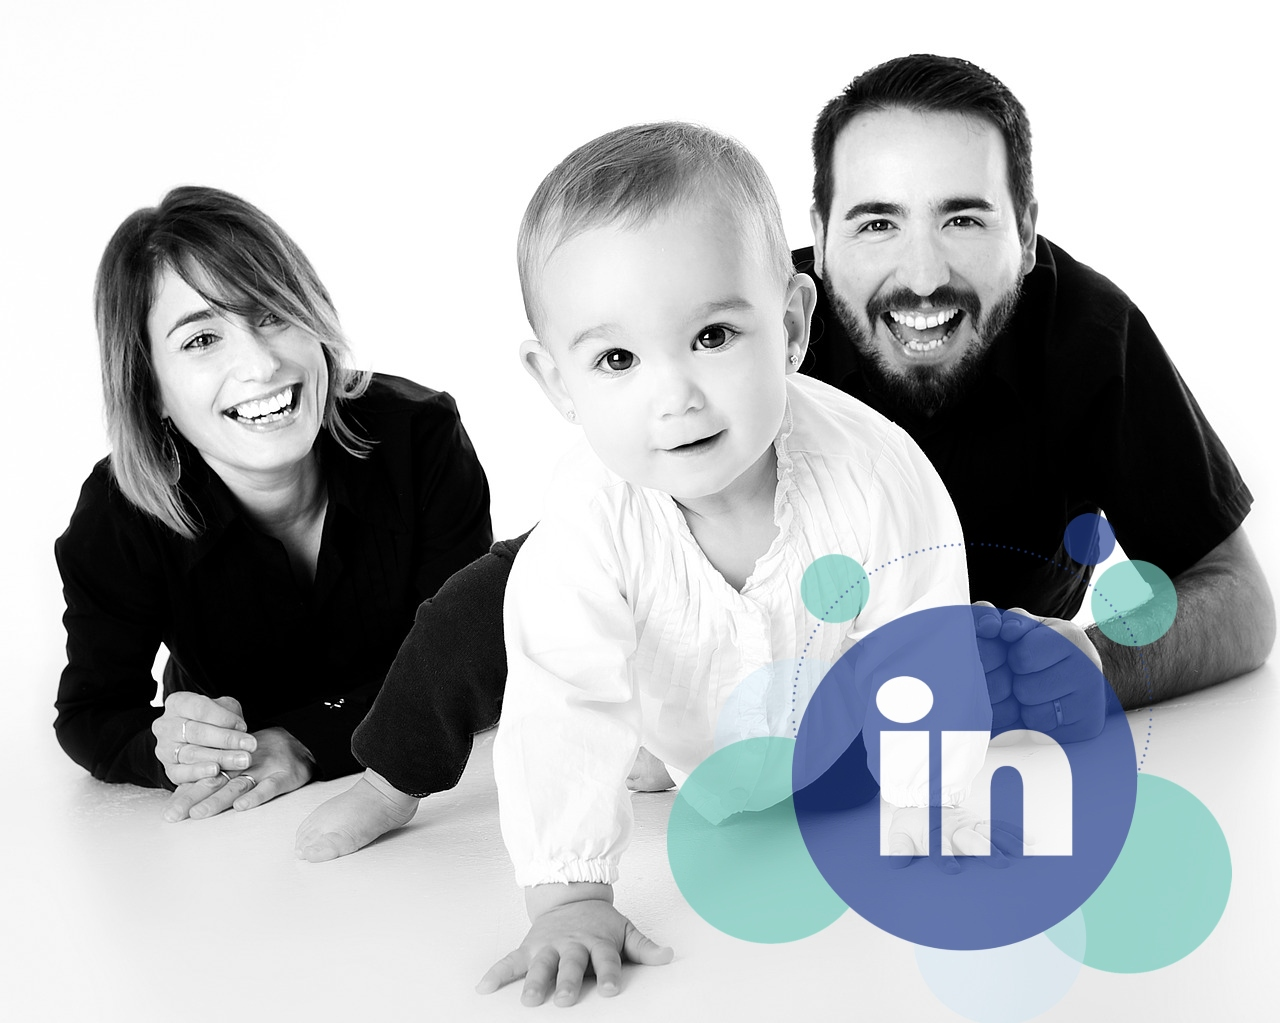 Linkedin Startup Outreach Recognised As Top By Picante Today Hot News Off The Press